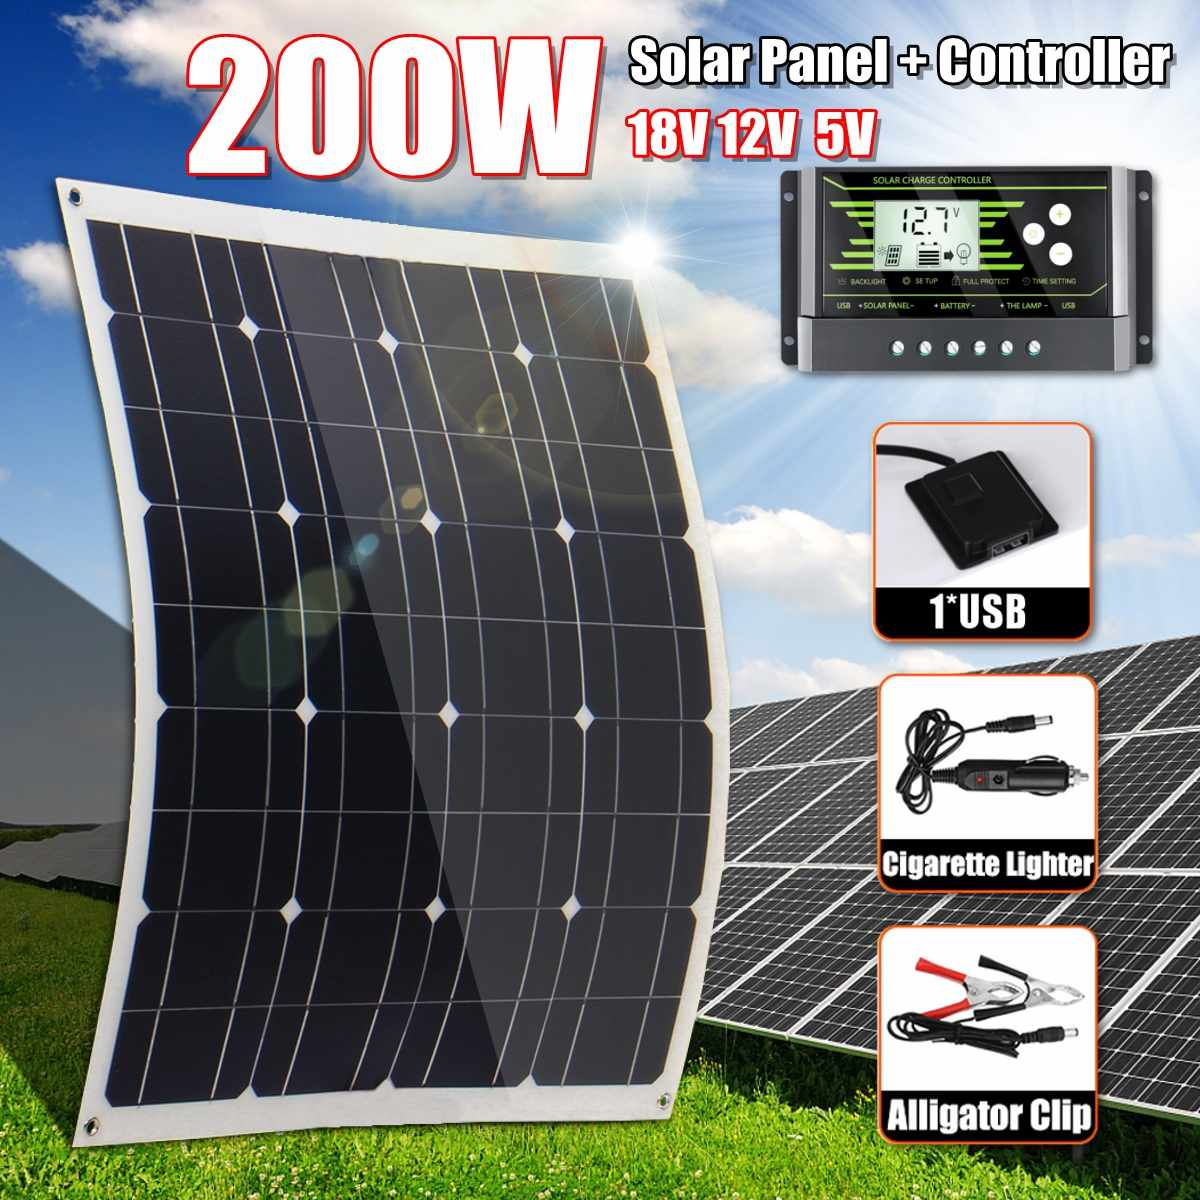 Hot Sales <font><b>200W</b></font> <font><b>Solar</b></font> <font><b>Panel</b></font> 18V 5V Flexible MonoCrystalline Silicon With 10/20/30A Controller for Outdoor <font><b>Solar</b></font> Battery image